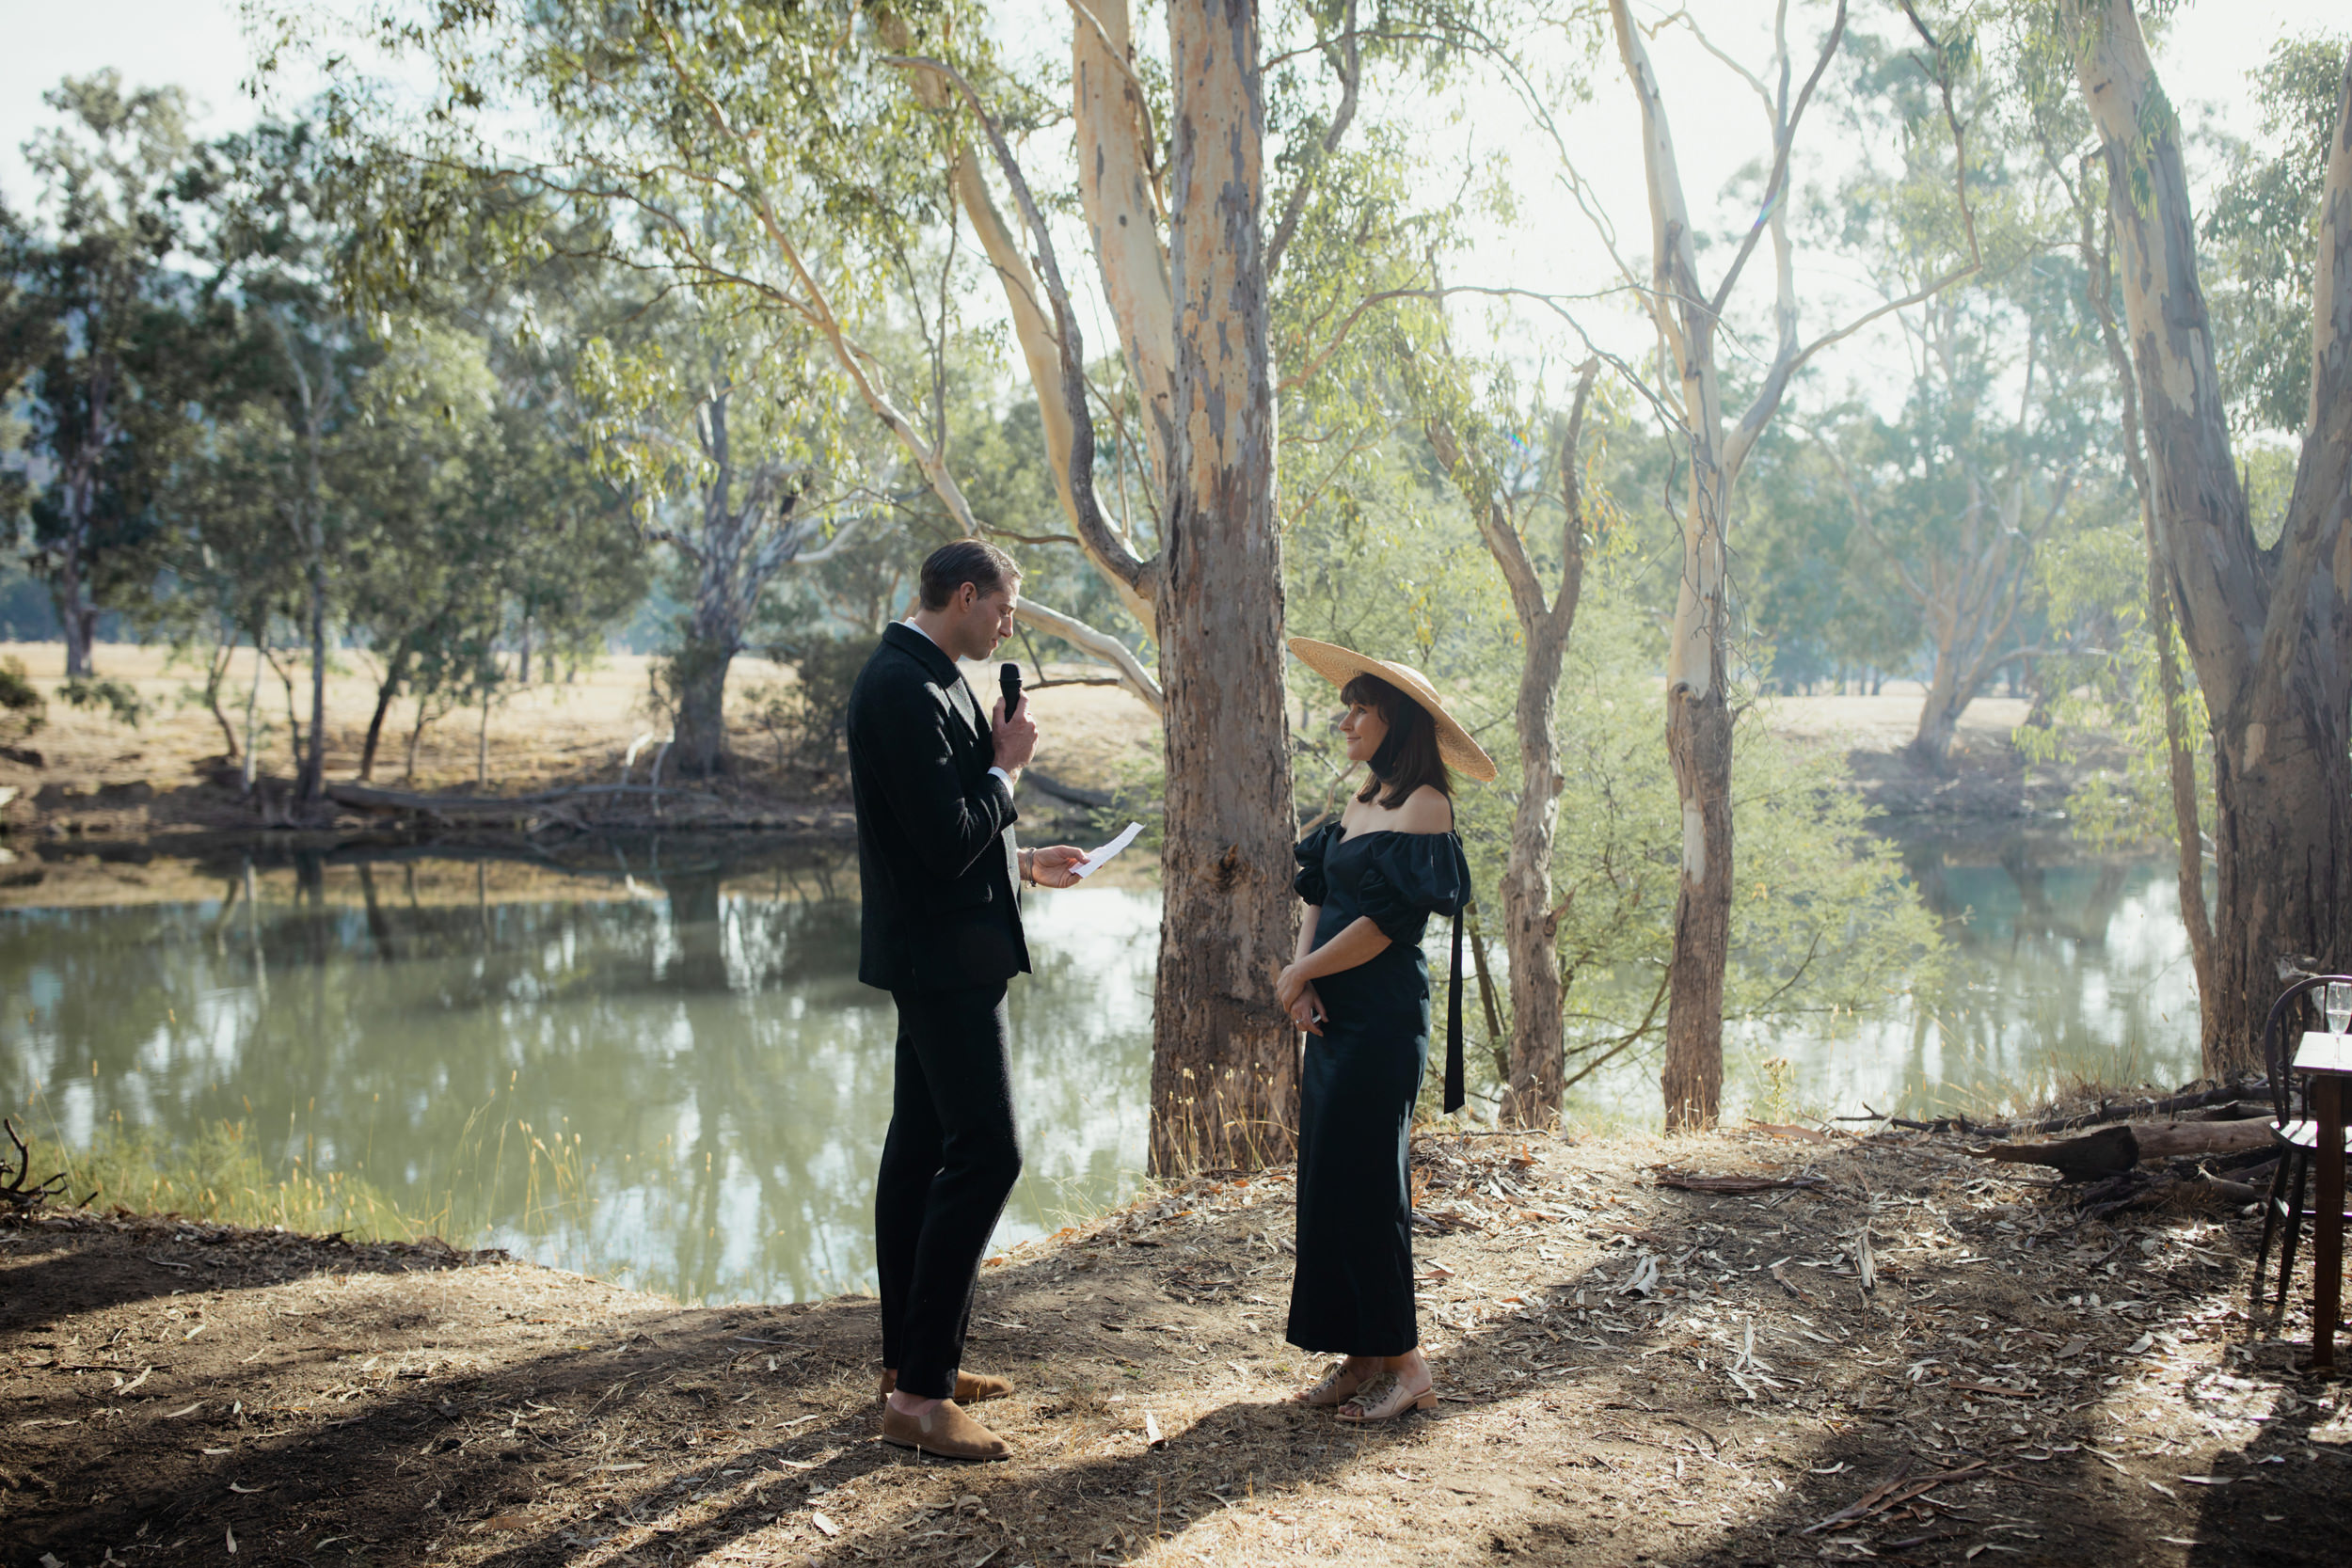 I-Got-You-Babe-Weddings-Claire-Dave-Trawol-VIC-Country-Property-Wedding119.JPG